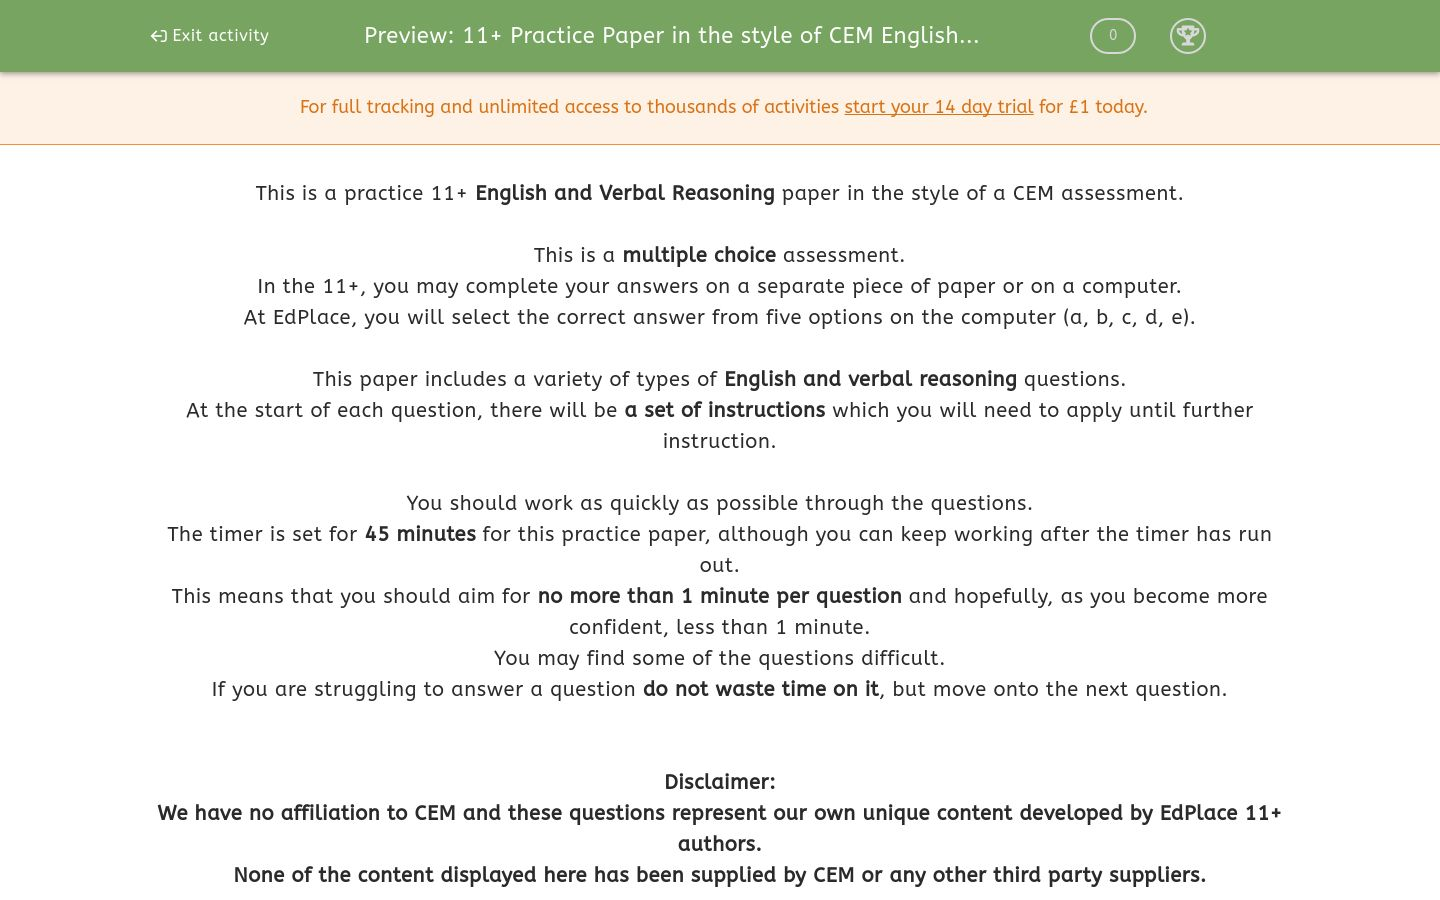 '11+ Practice Paper in the style of CEM English and Verbal Reasoning' worksheet